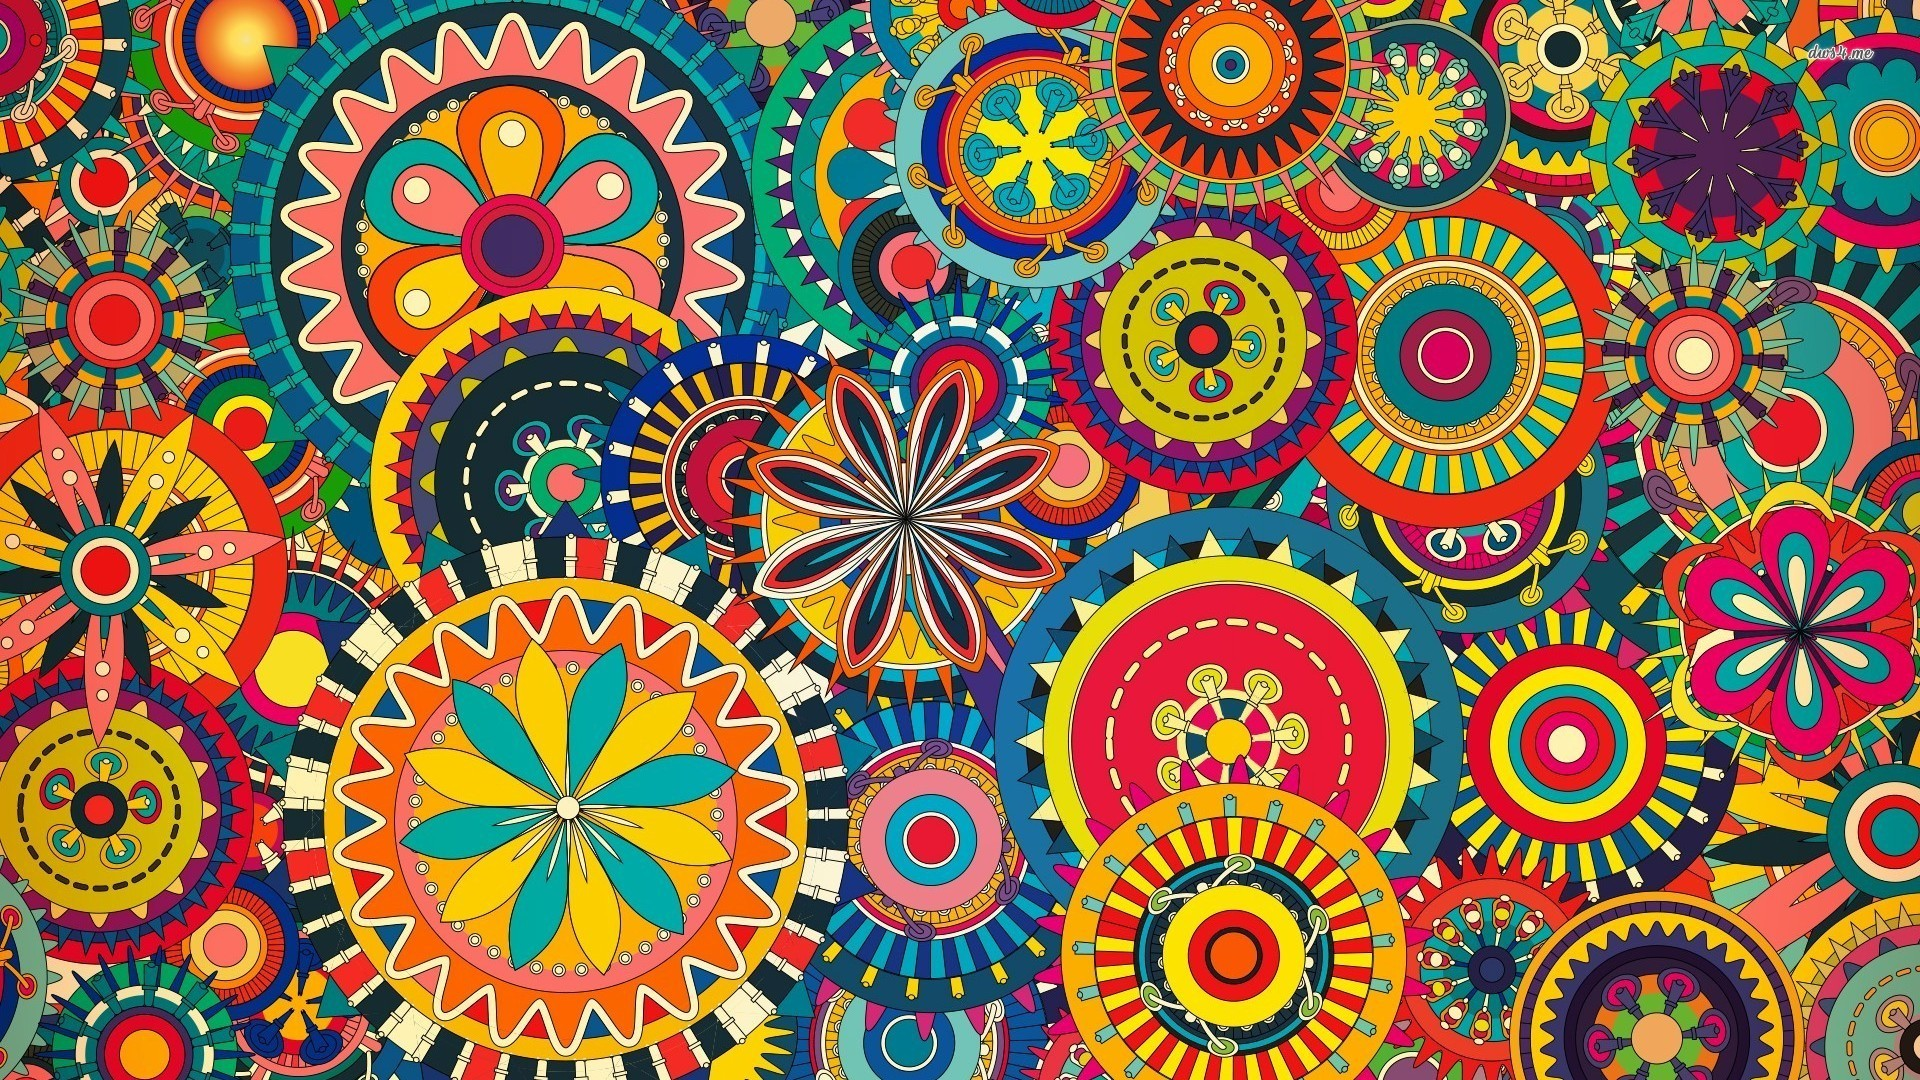 1920x1080, Aztec Wallpaper Pattern Stock Vector Abstract - Pattern Colorful Background Hd - HD Wallpaper